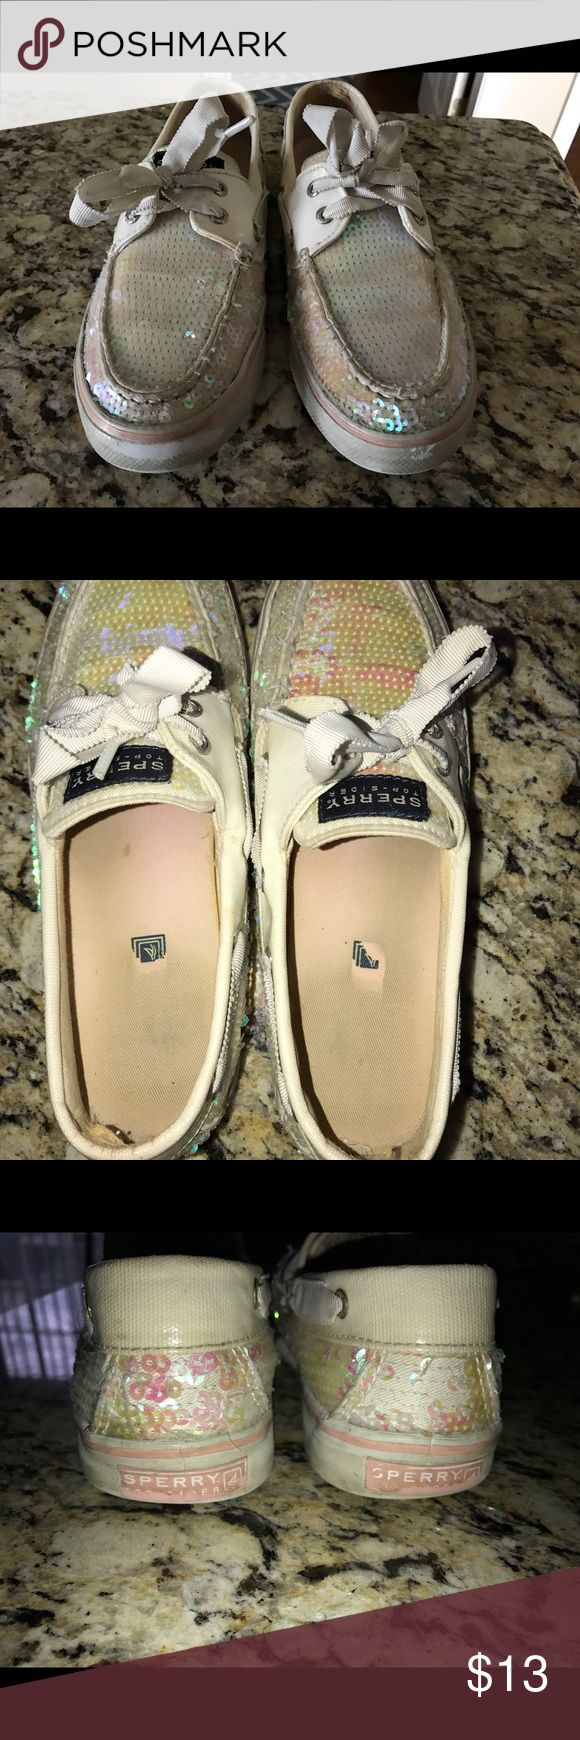 Women's sparkle white sperry's Women sparkle white sperry's. Size 7.5... wear & tear. Not asking for a lot on the price. Sperry Top-Sider Shoes Sneakers